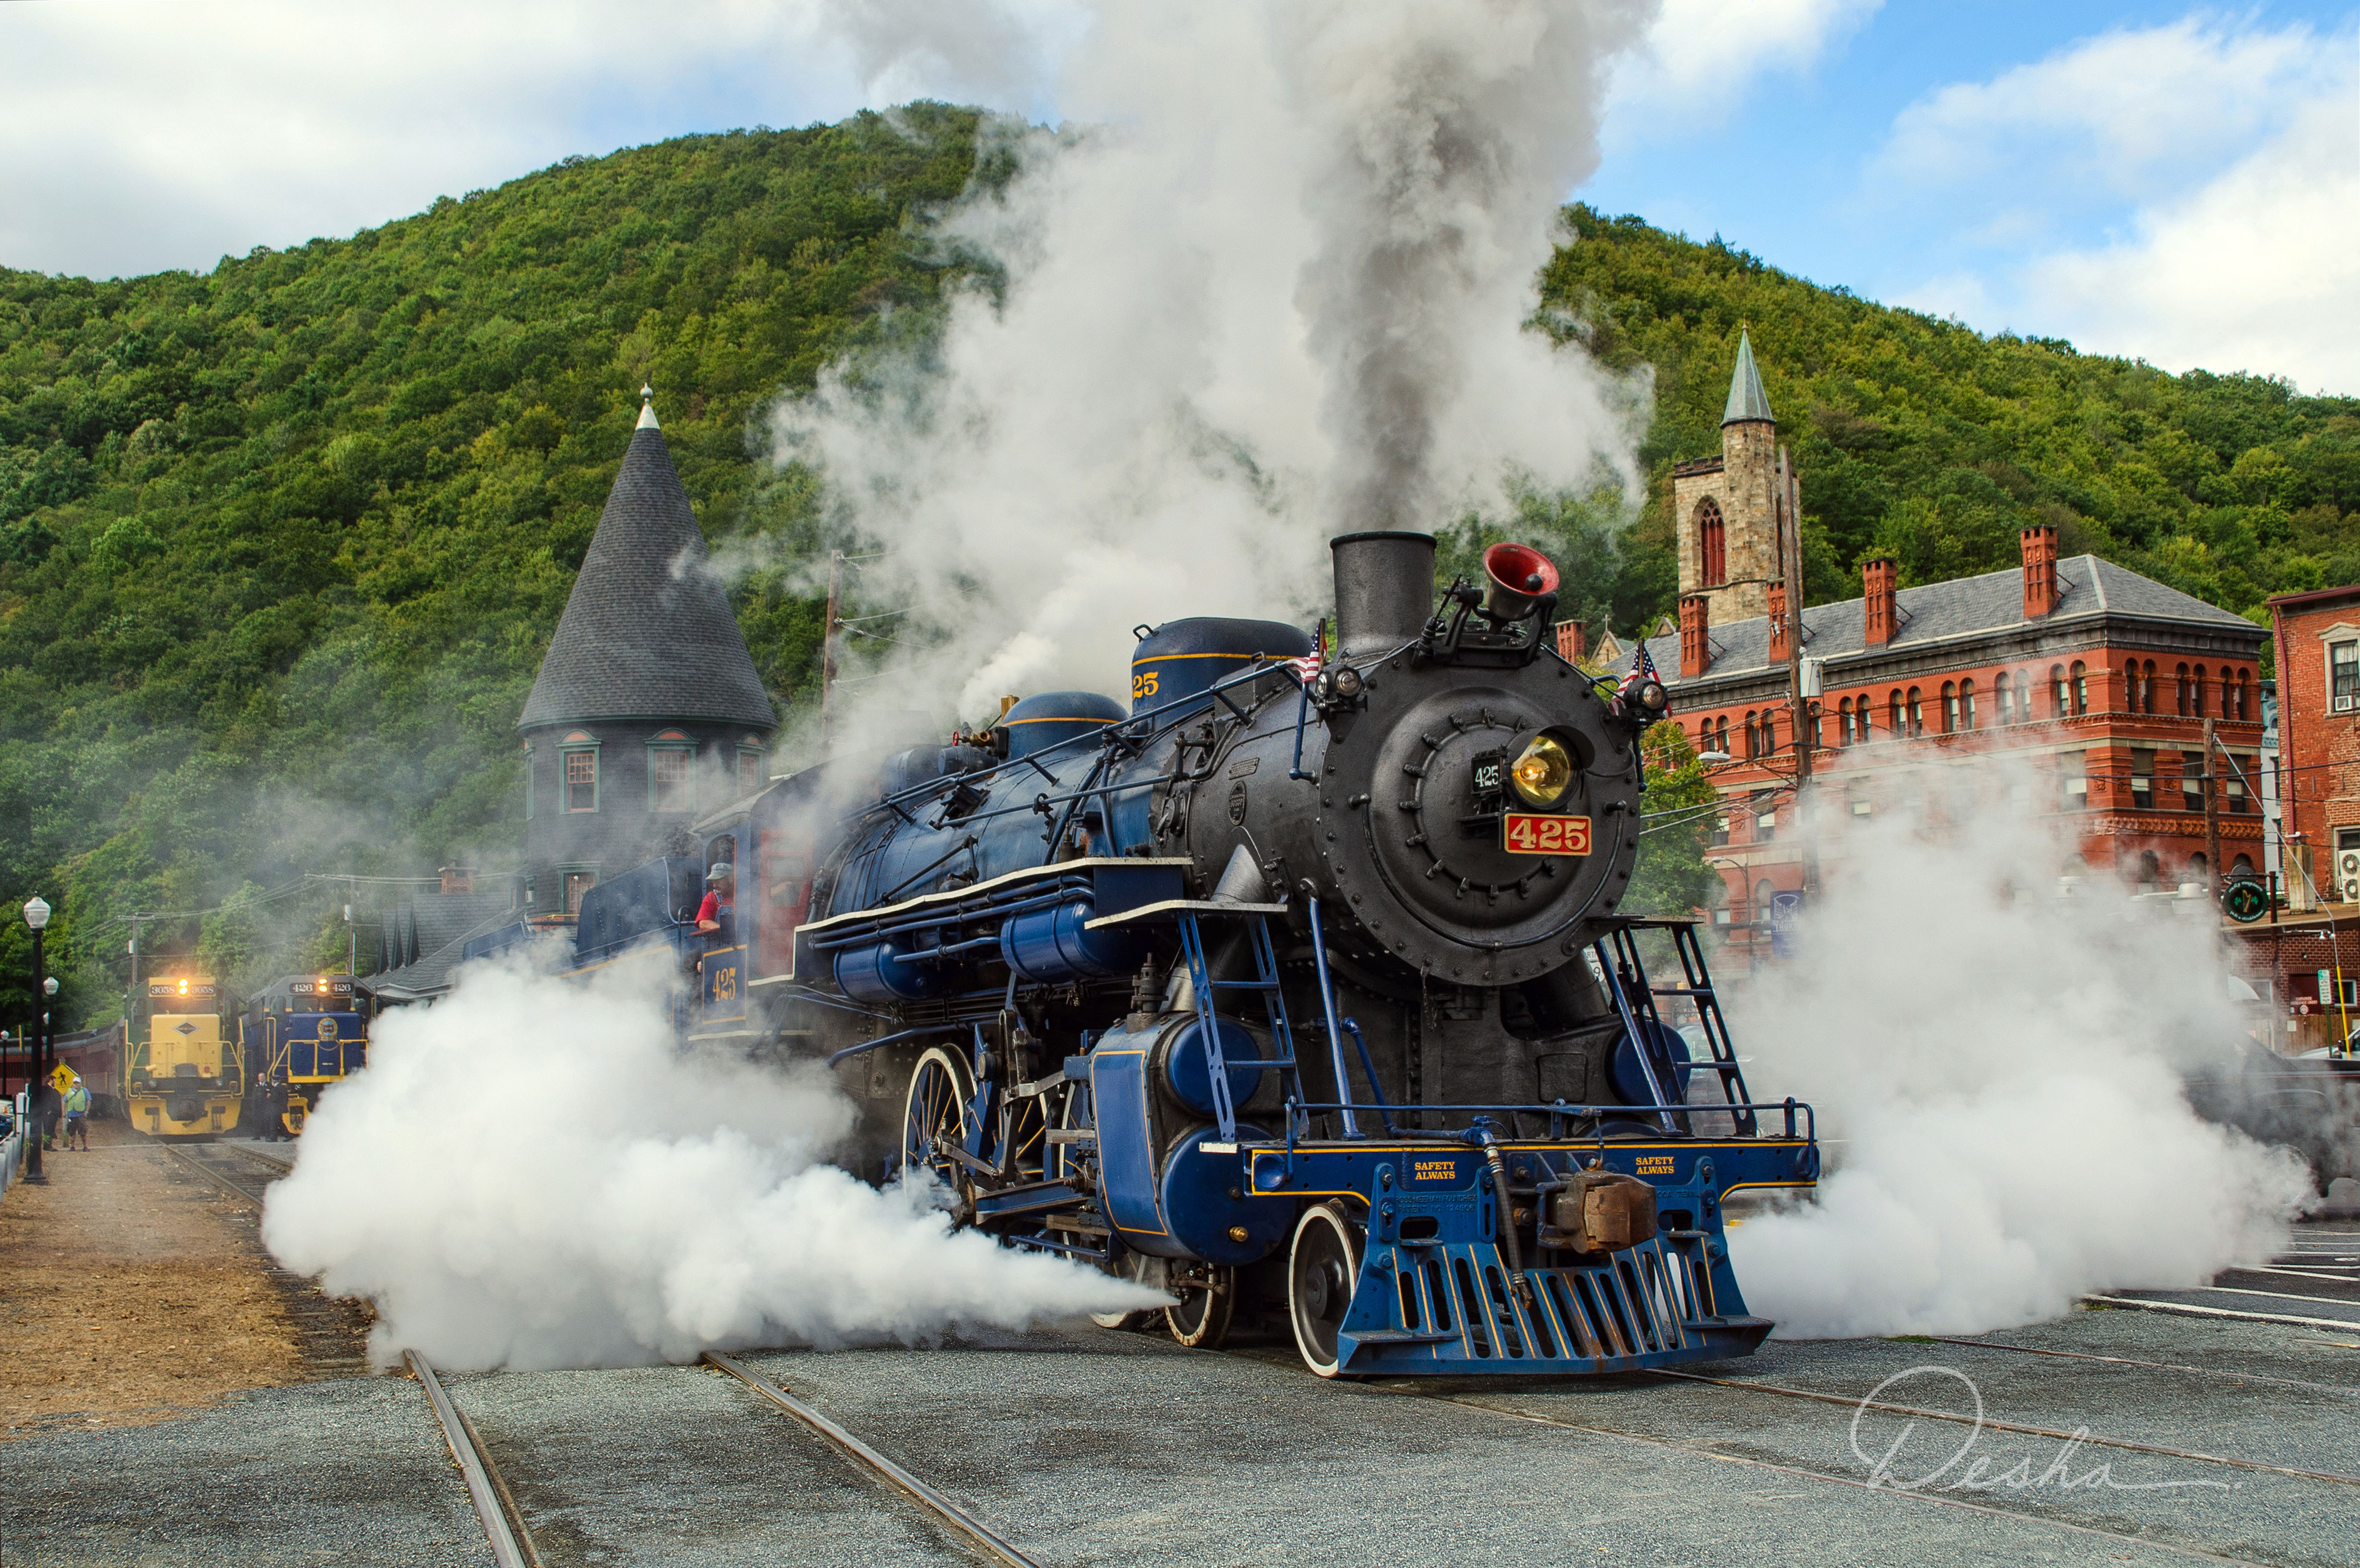 The 425 in Jim Thorpe, PA